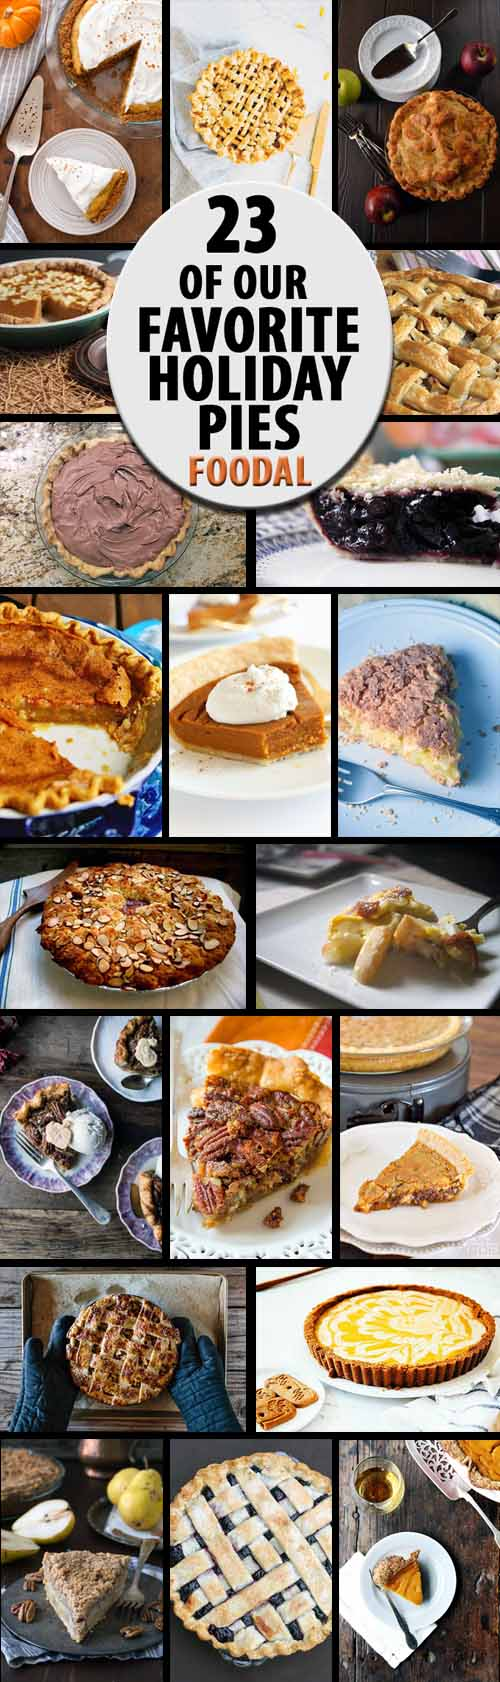 At the holidays, dessert wouldn't be complete without a slice of pie. From apple and pumpkin to custard and banana cream, we share our favorite pies from around the web. Plus recipes to cater to those with special diets, food allergies, and intolerances. Read more and get the recipes now on Foodal.